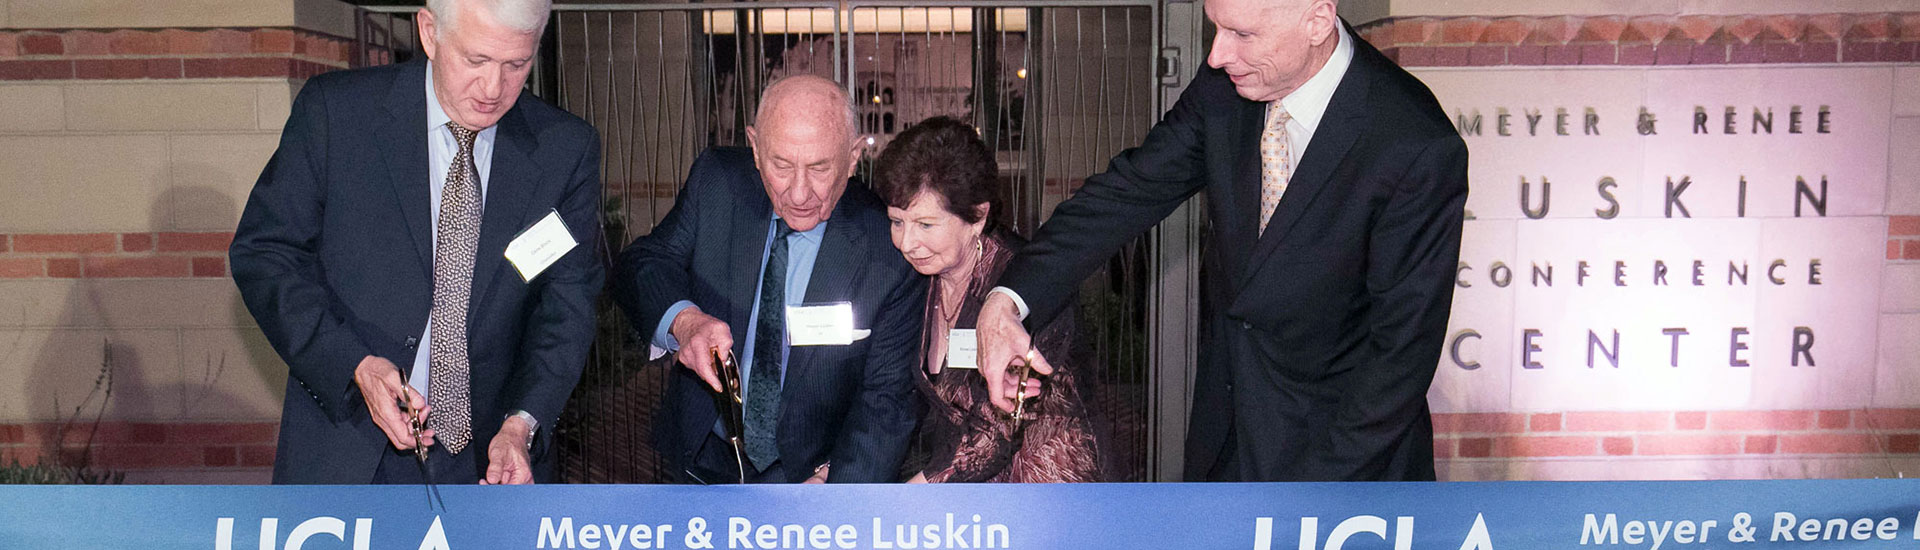 UCLA Luskin Conference Center Ribbon Cutting